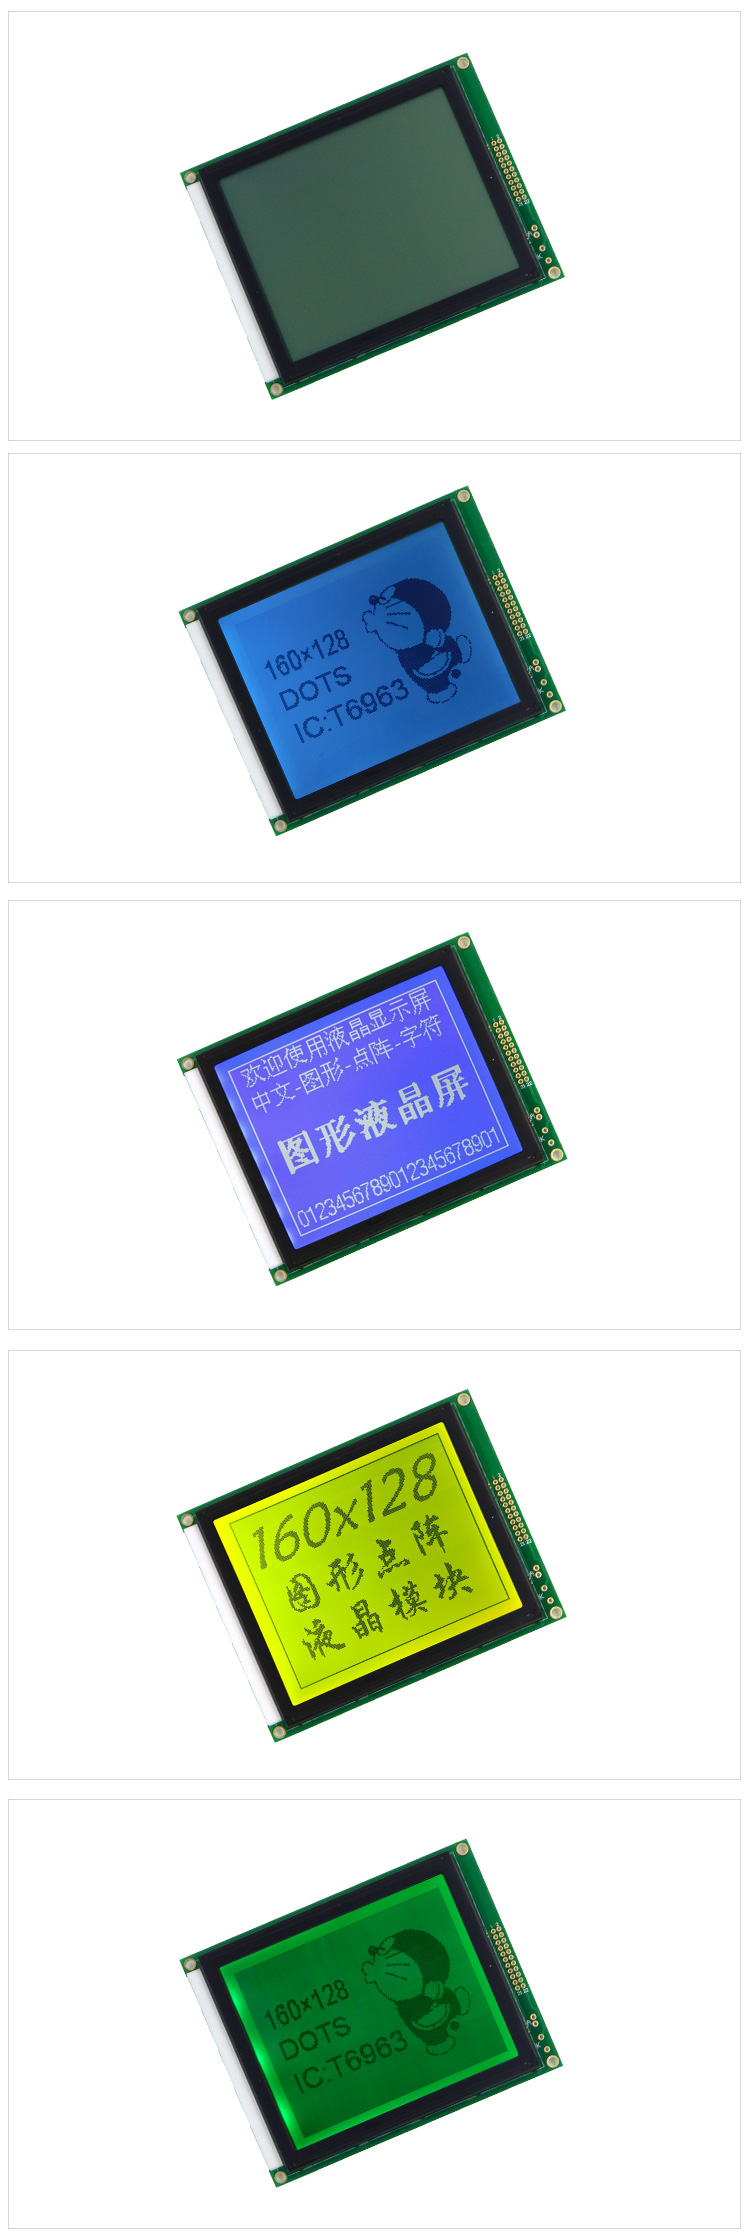 TCC 160x128 graphic Parallel interface  Multiple effects t6963 Controller STN lcd display